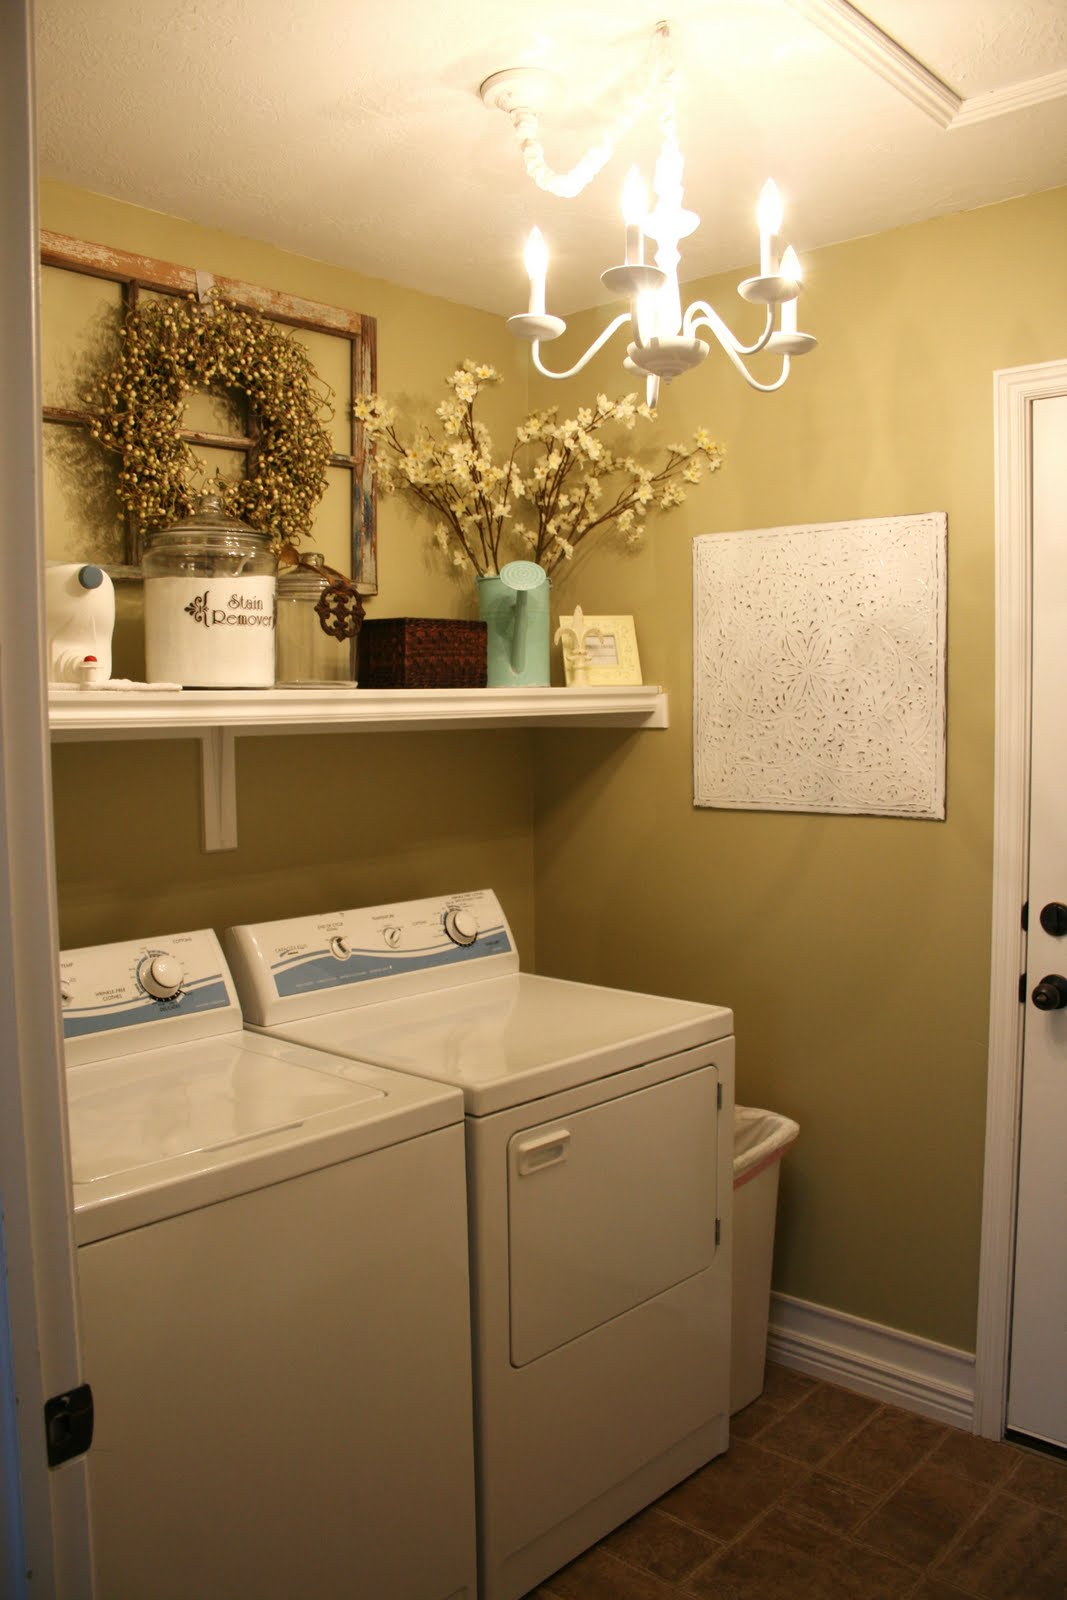 Sassy sites home tour the laundry room for Decorate a laundry room